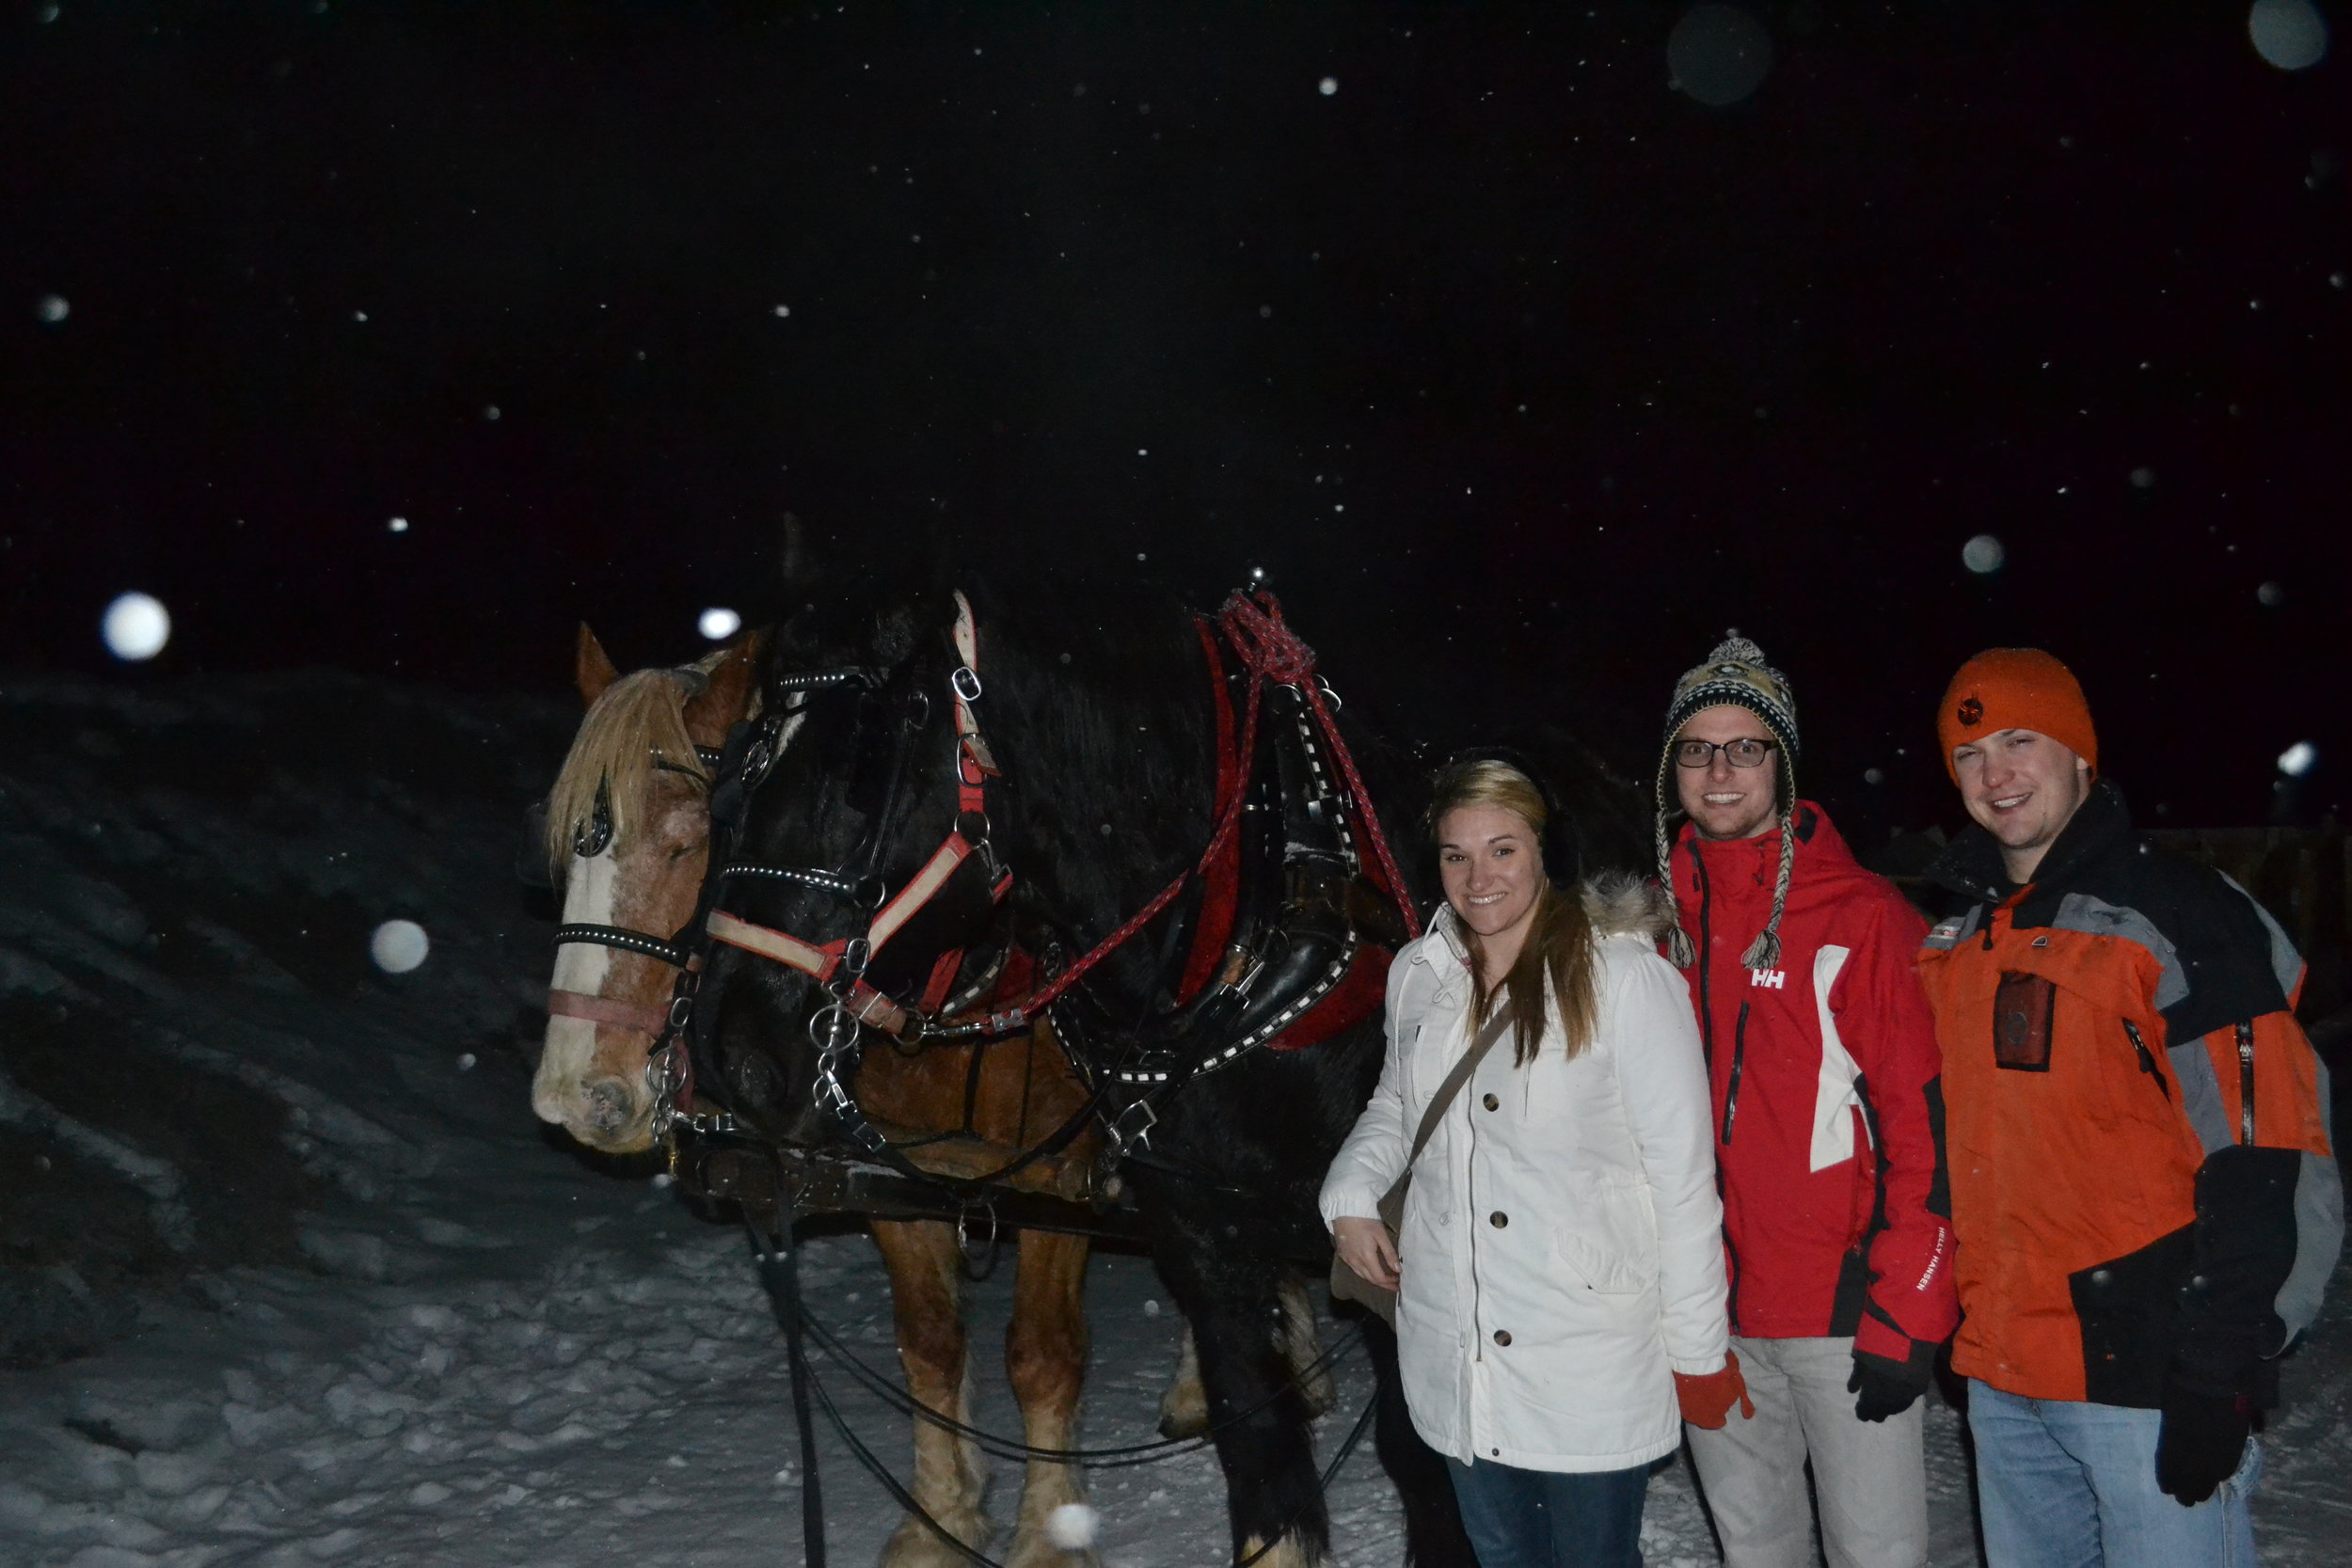 photo with the horses